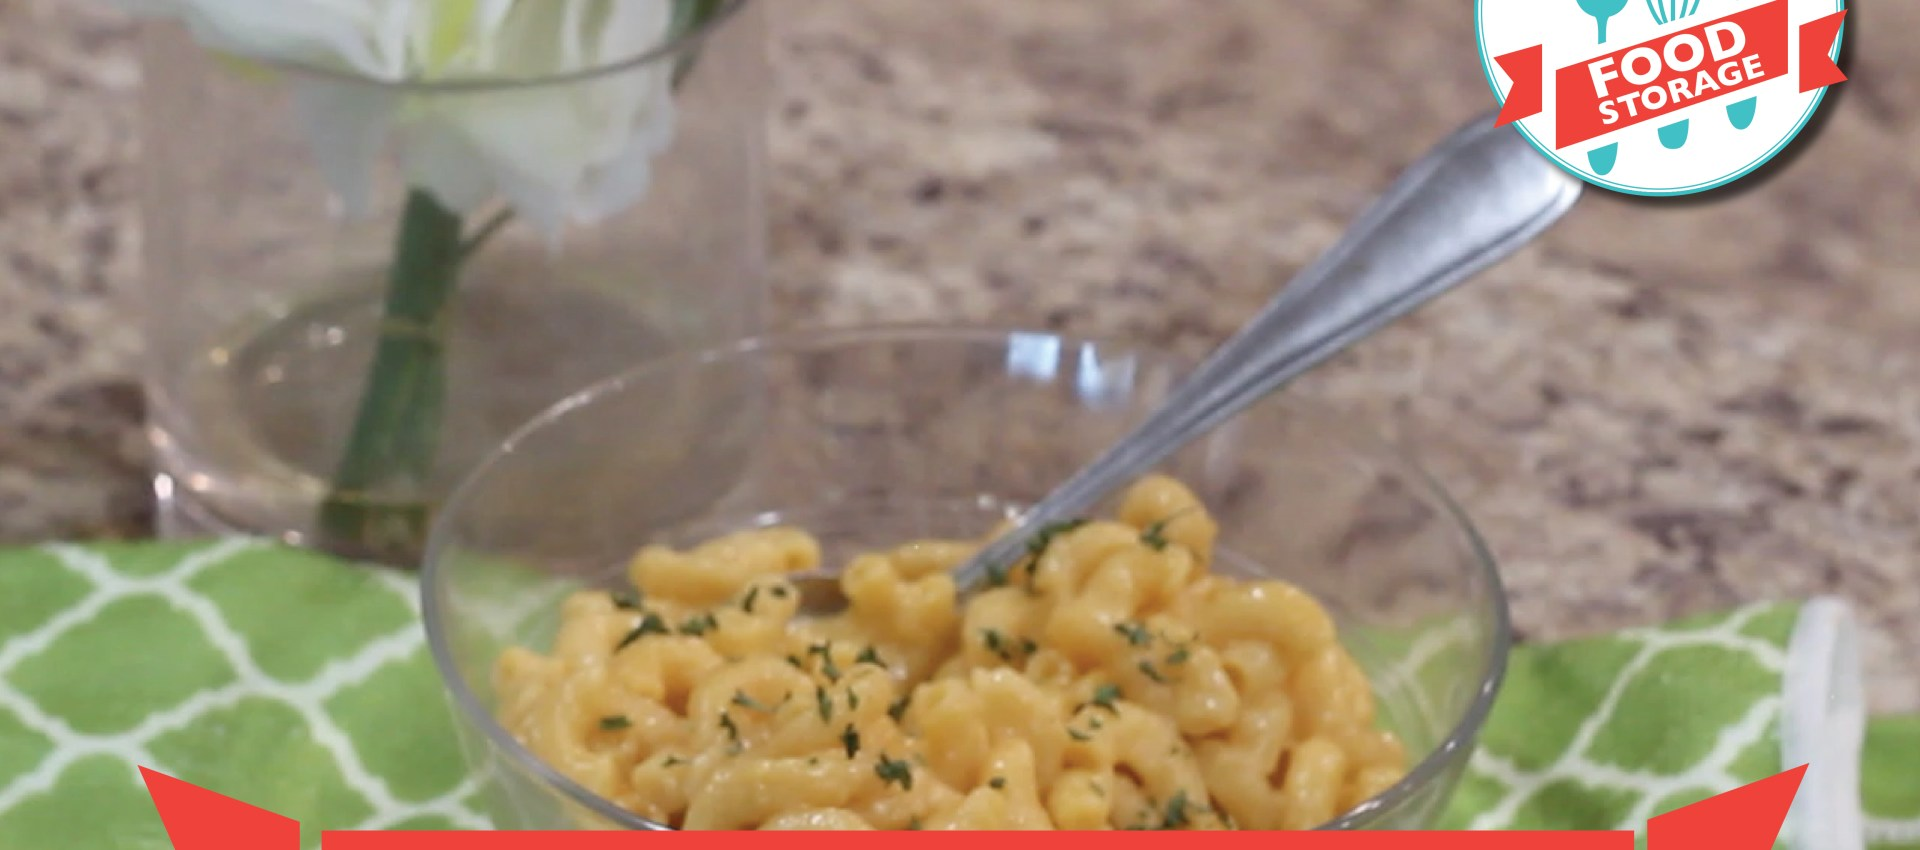 how to make a microwave bowl of mac and cheese